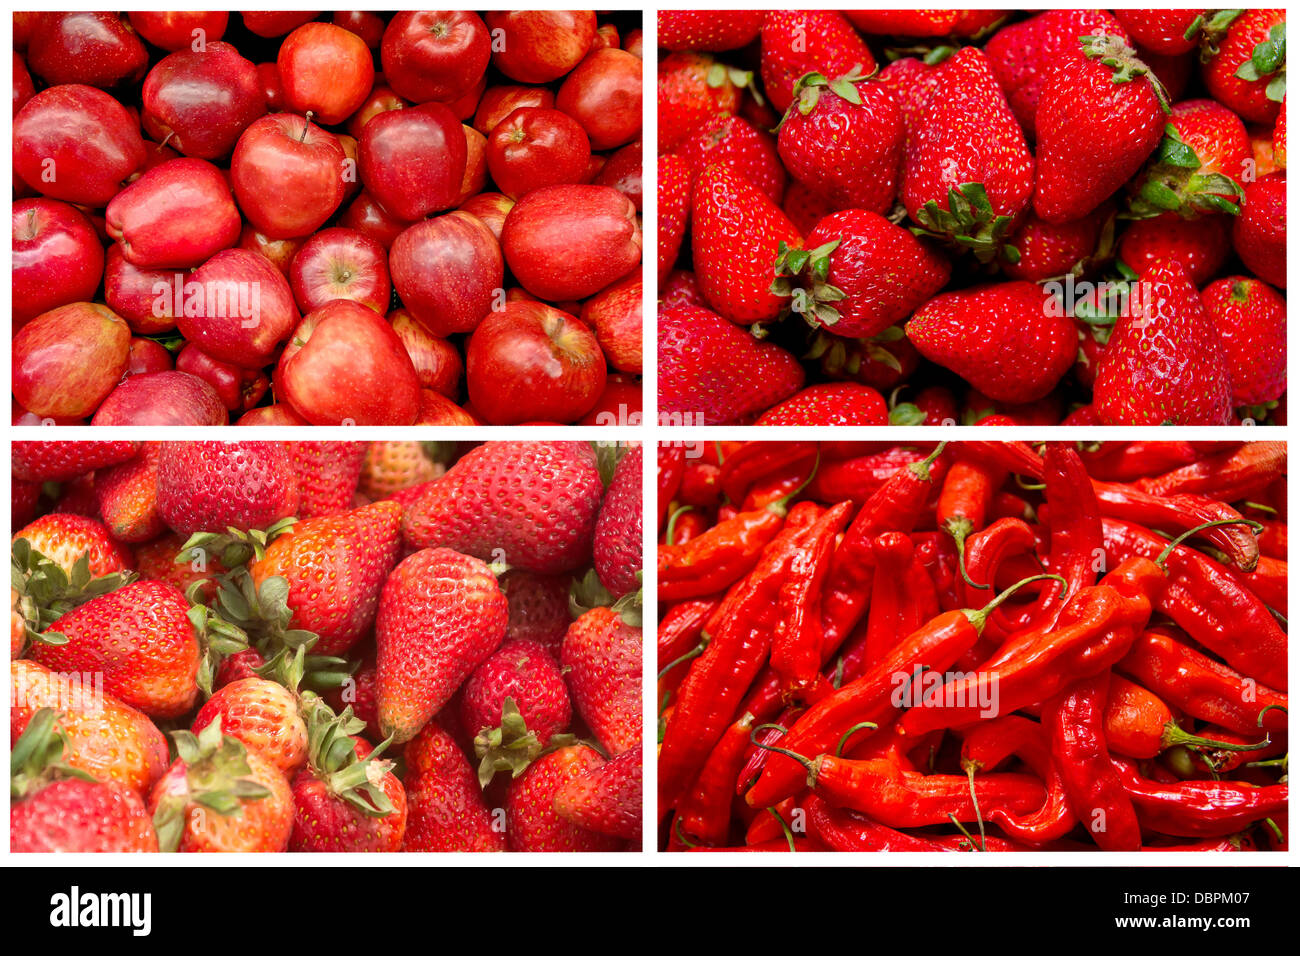 red fruits and vegetables - Stock Image